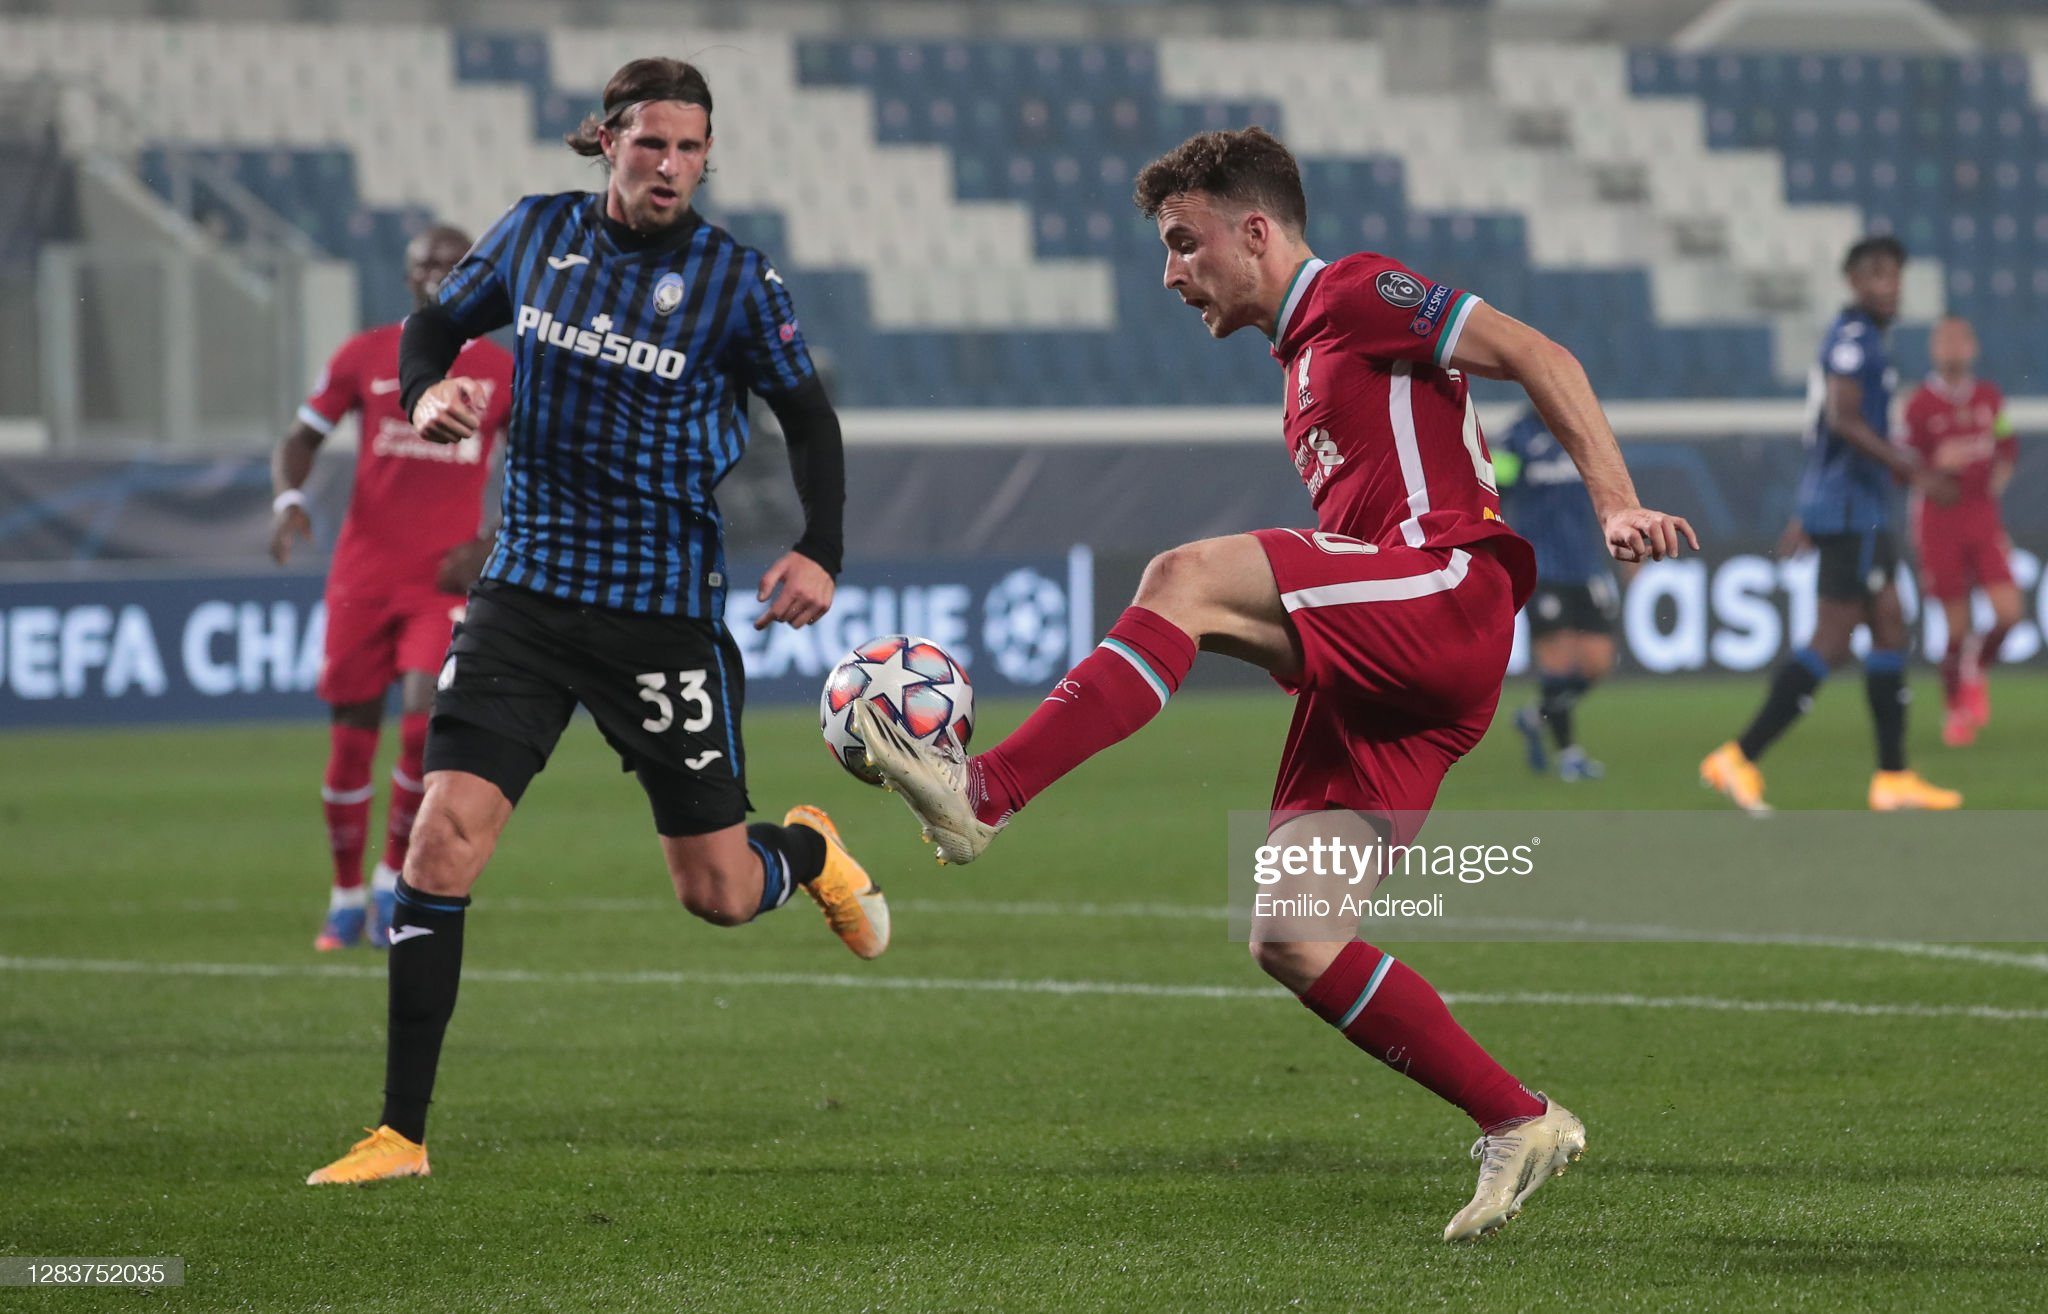 Liverpool vs Atalanta Preview, prediction and odds